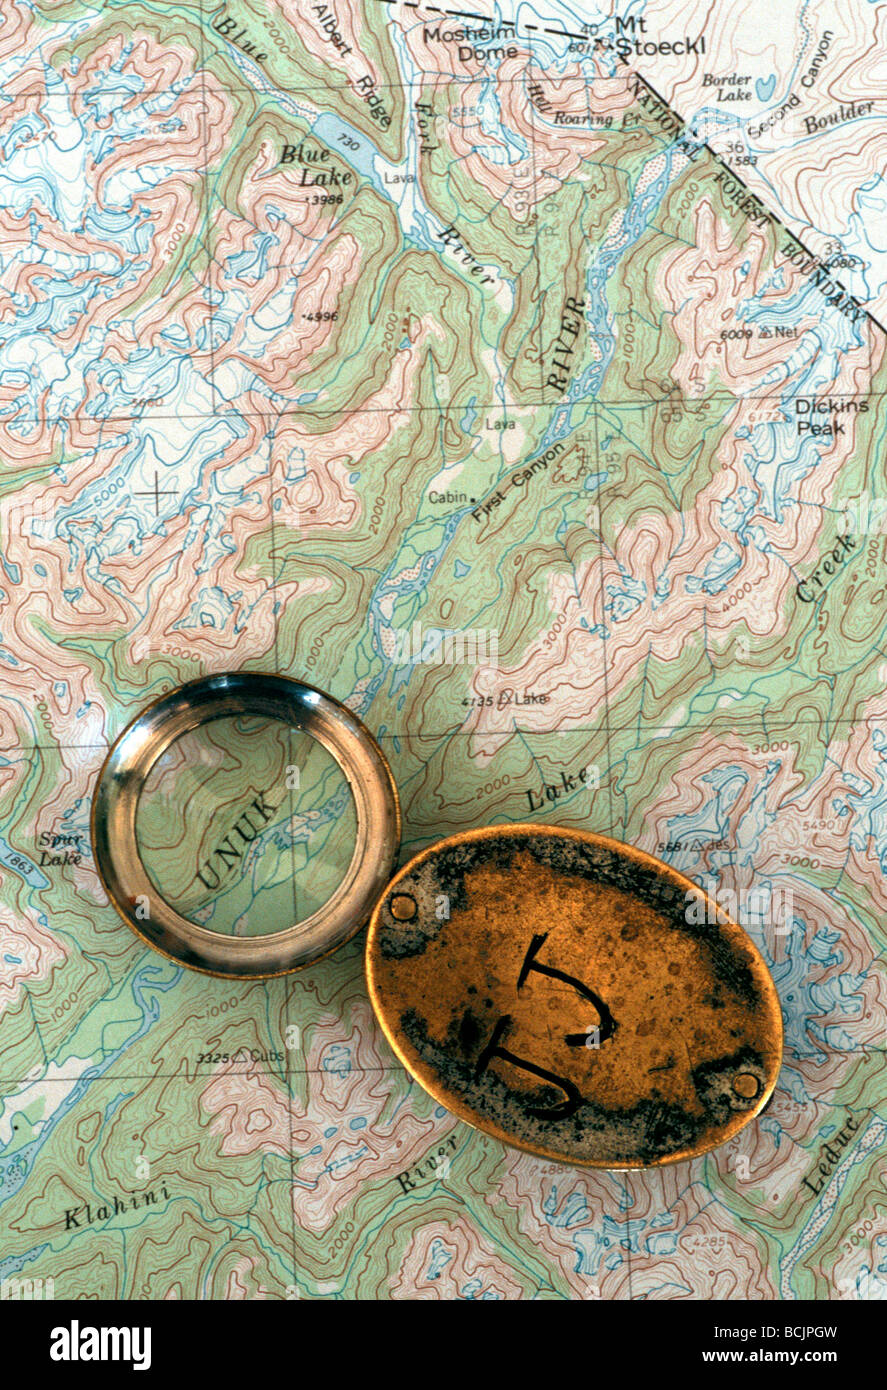 Magnifying lupe on topographical map - Stock Image